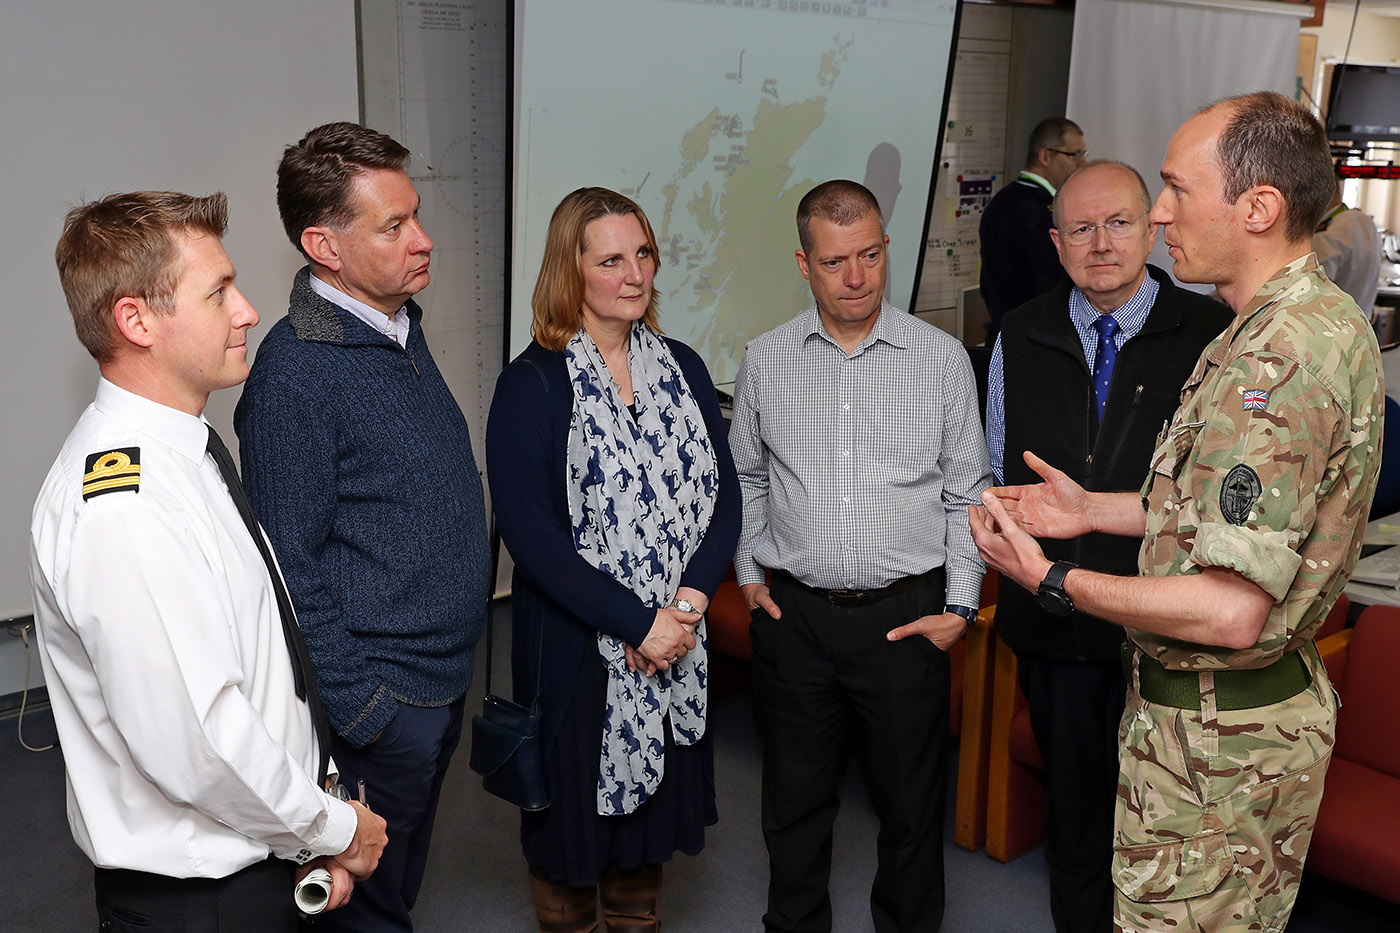 MSPs discover more about Europe's largest military exercise